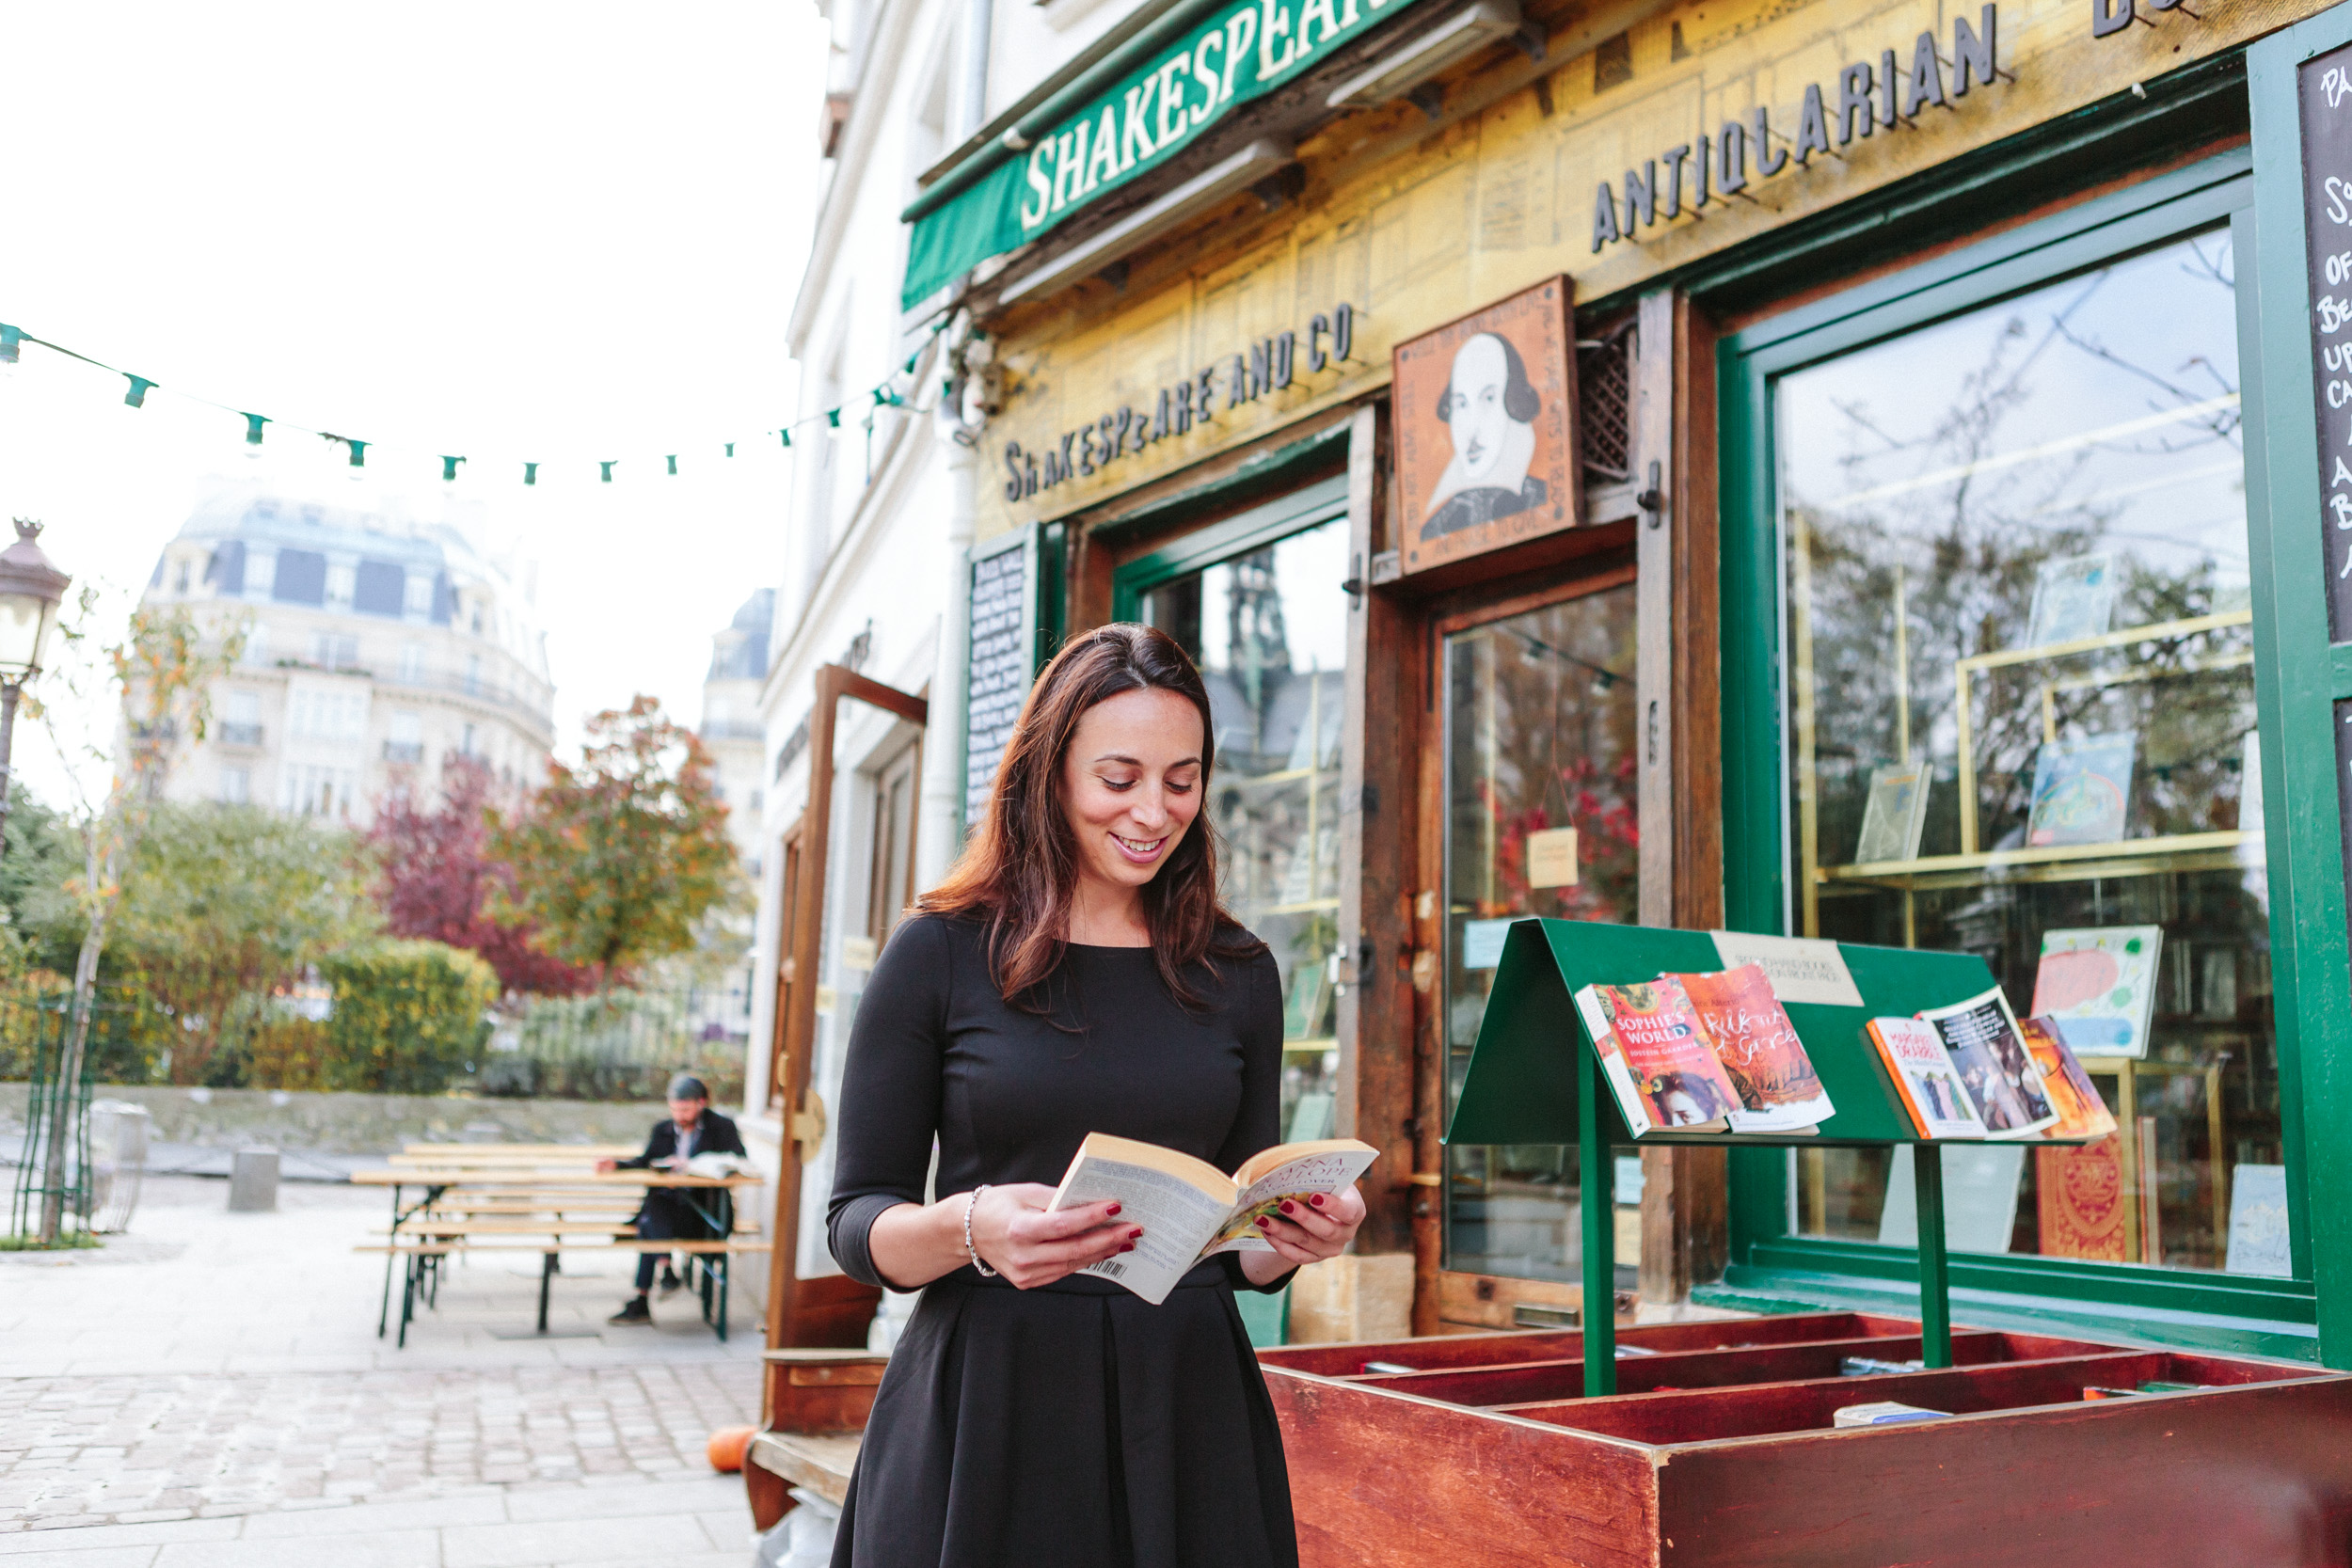 Portrait of Rebecca Plotnick founder of Every Day Parisian blog in front of Shakespeare and Co book store and cafe captured by Paris Photographer Federico and Anastasia Guendel IheartParisFr TheFlyingPoodle